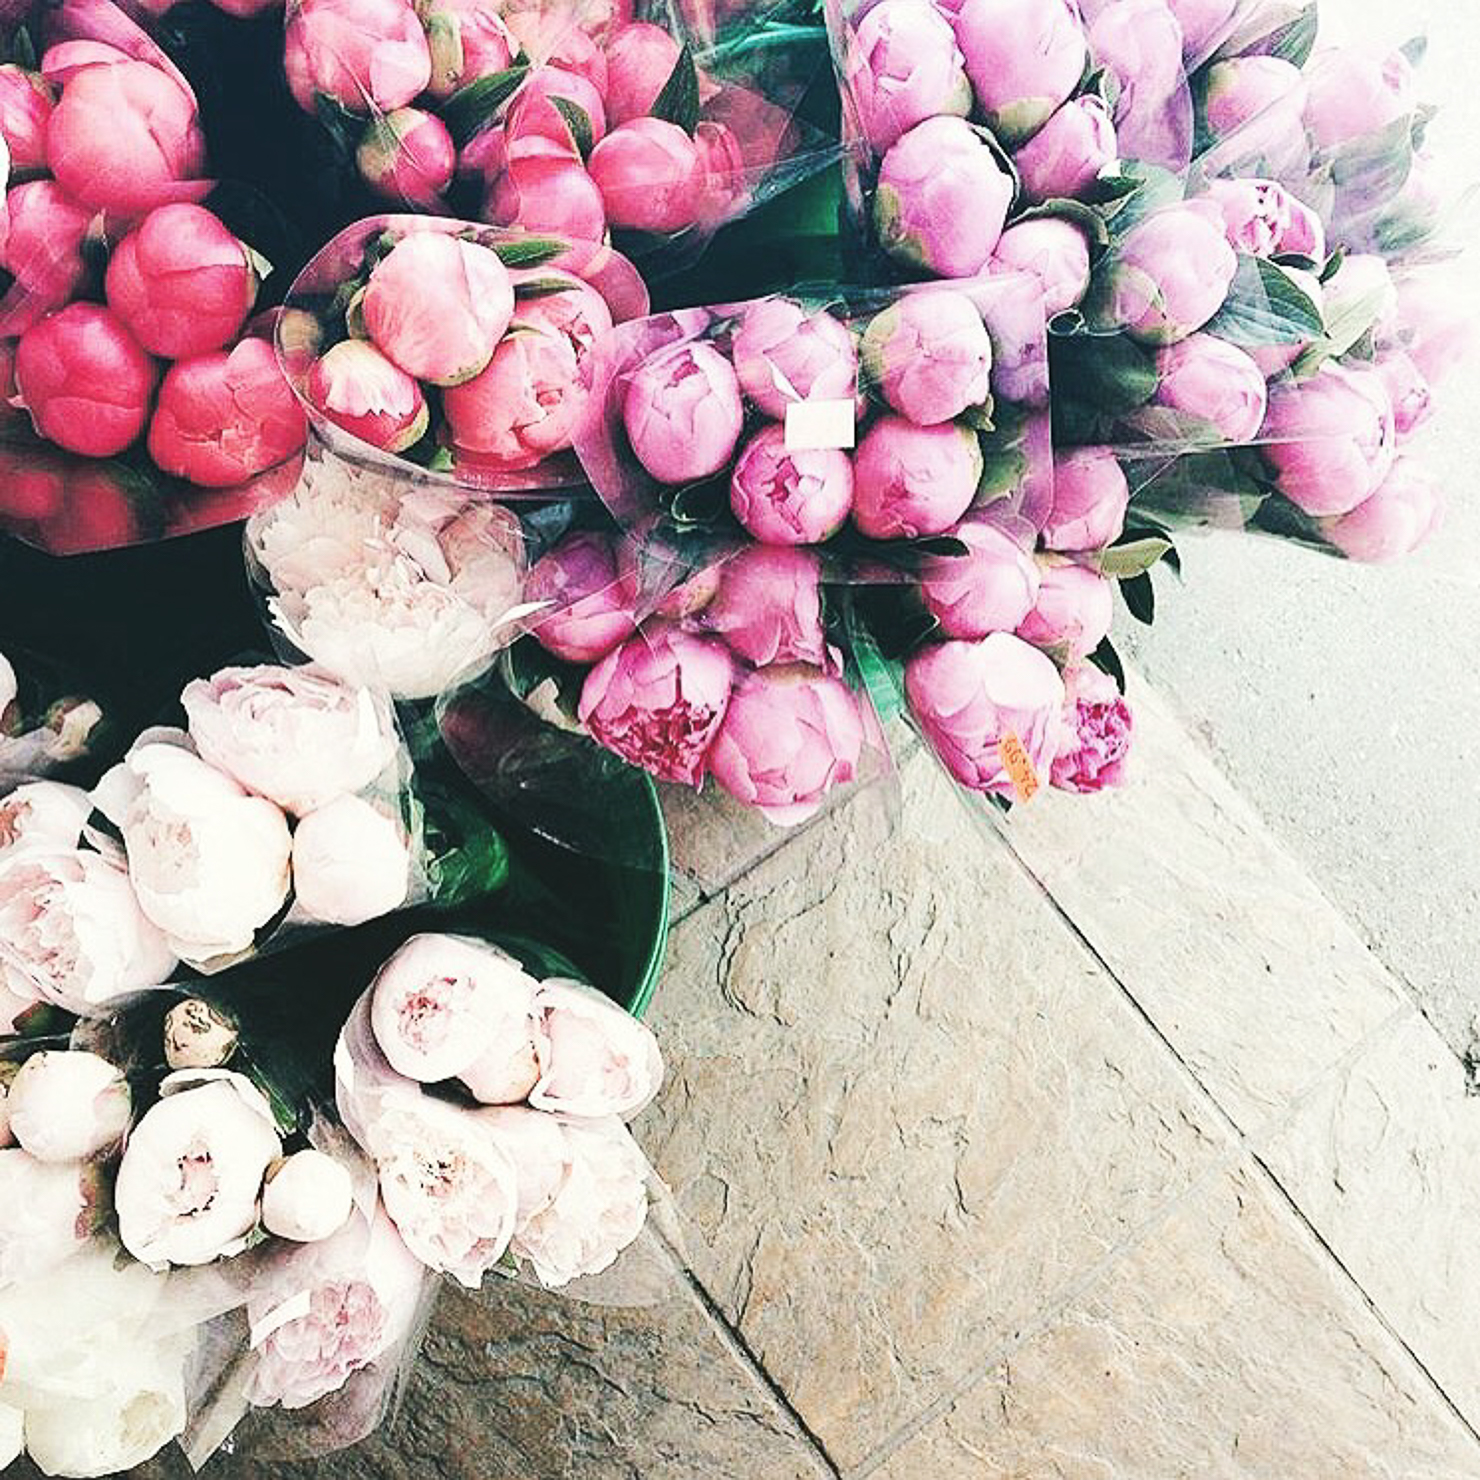 bouquets-of-colorful-peonies